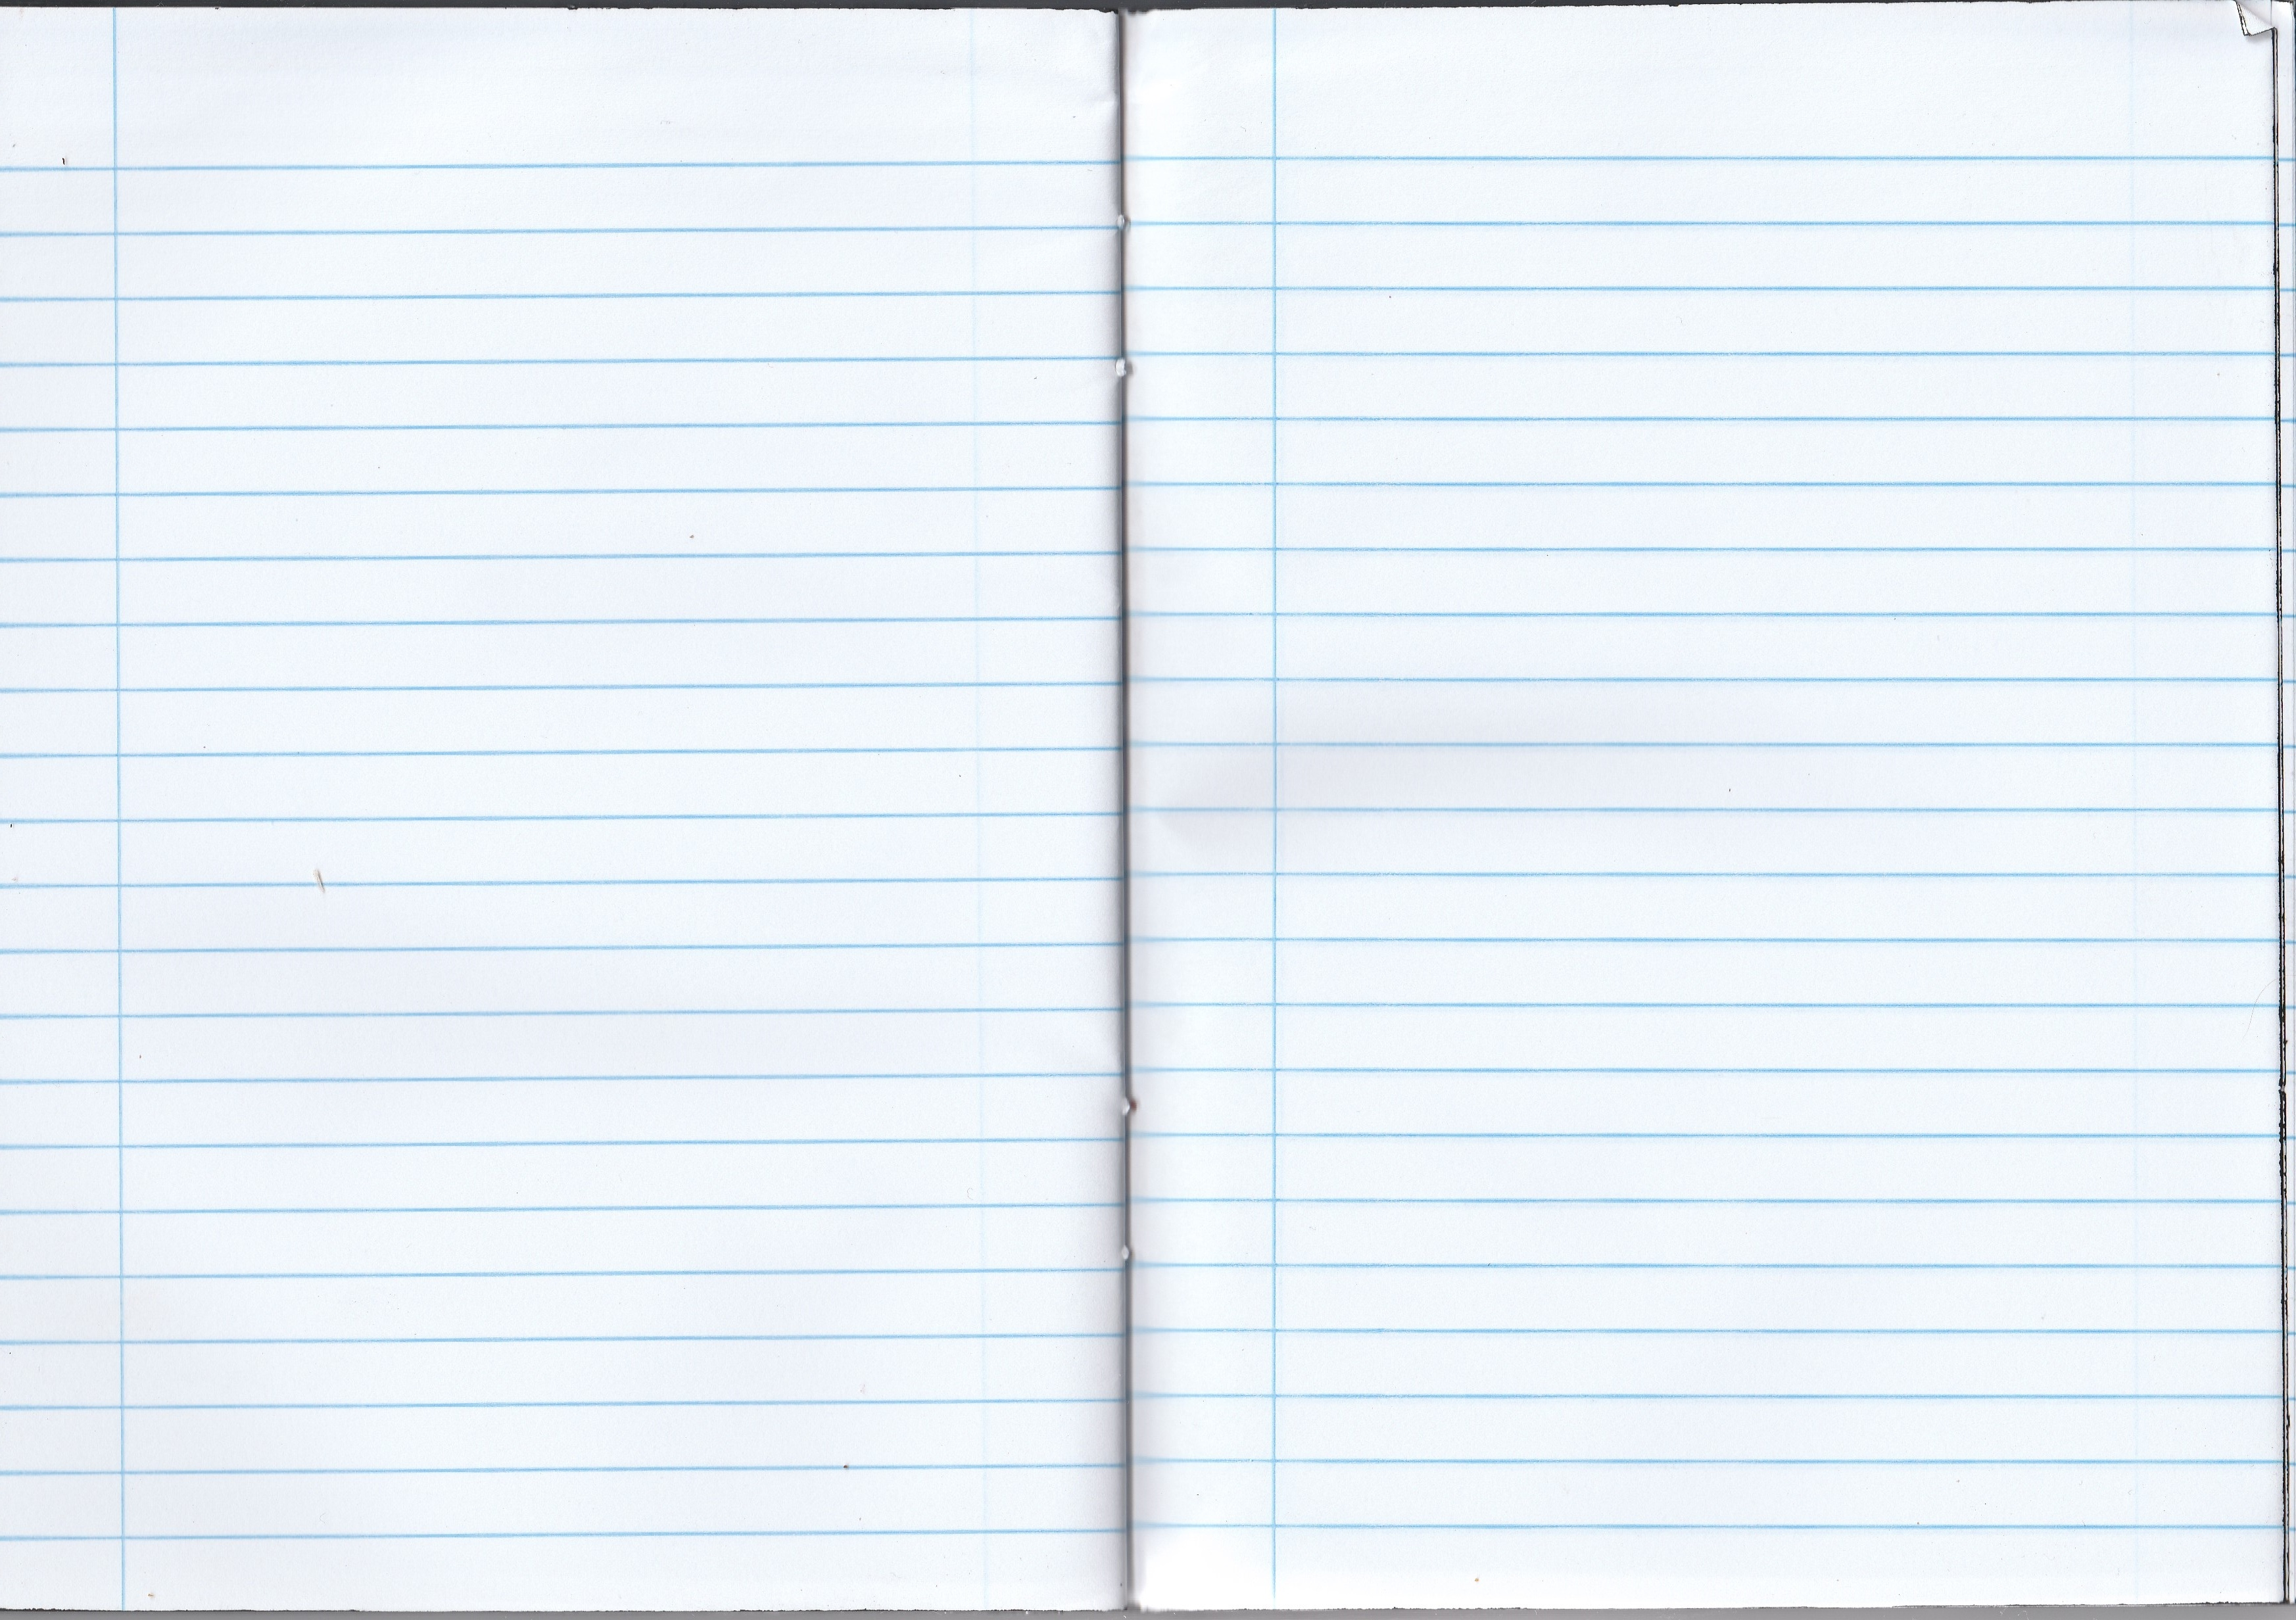 Notebook writing notes